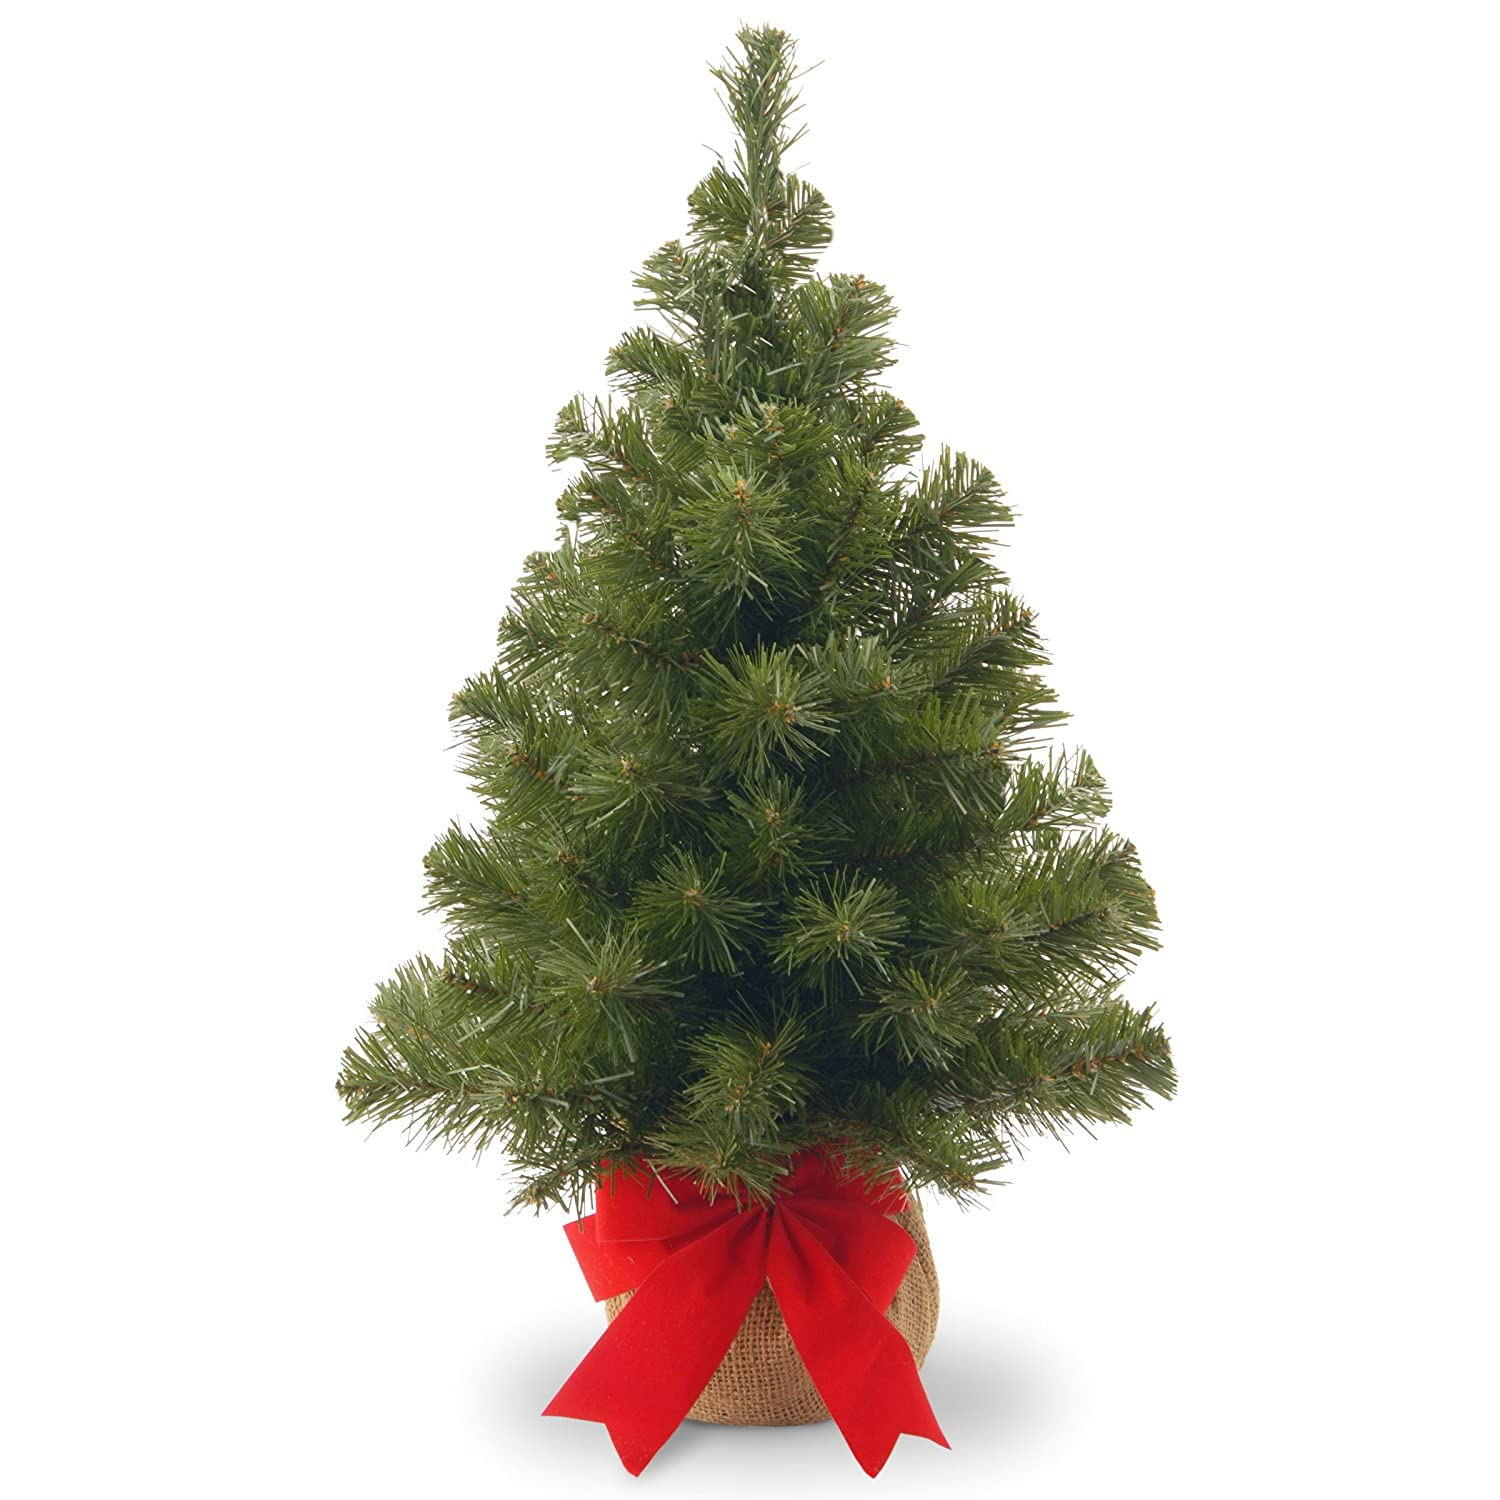 Amazon.com: National Tree 2 Foot Noble Spruce Tree with Burlap Bag ...